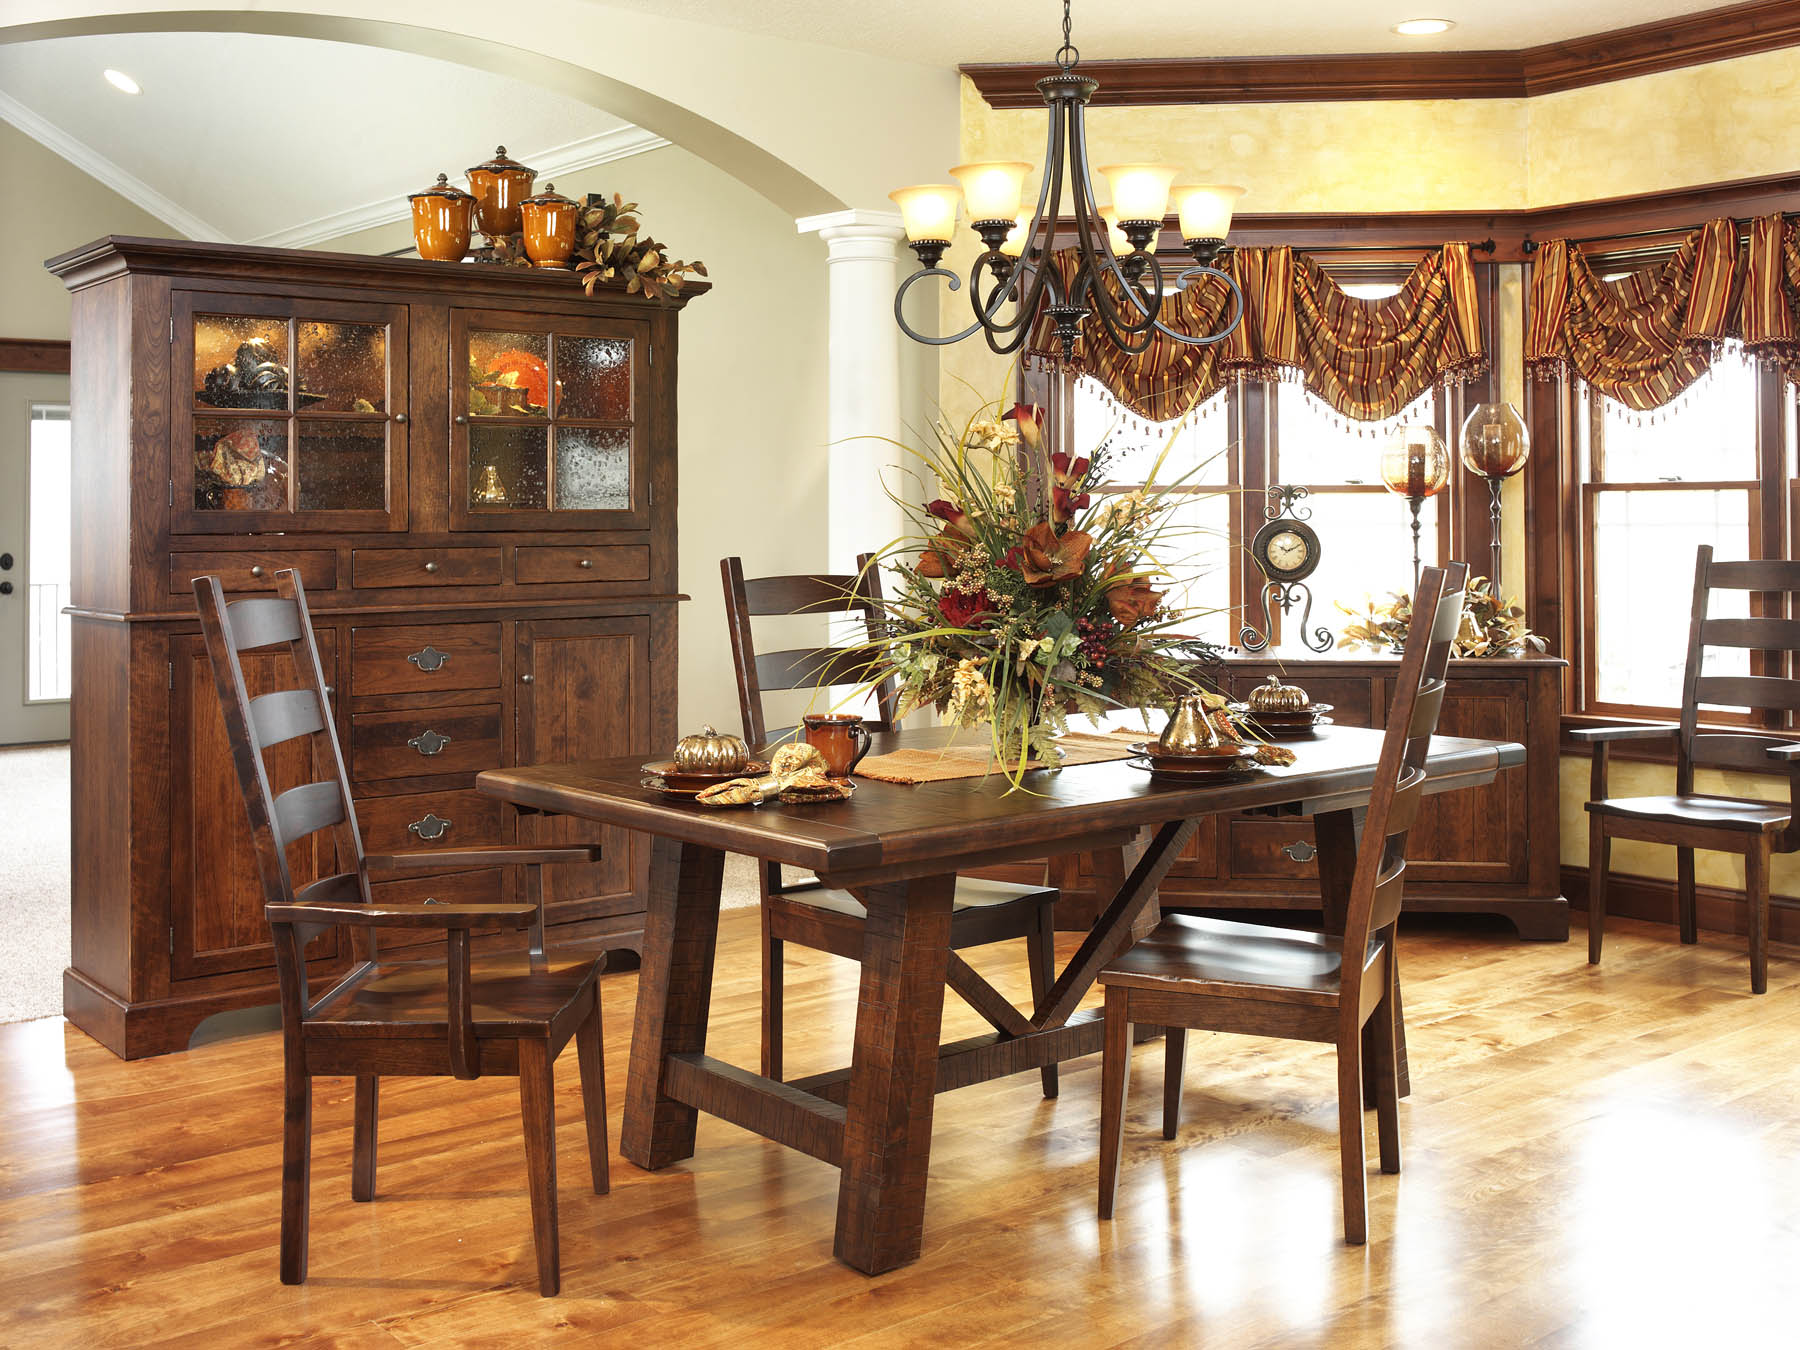 Early-American-Country-Farmhouse-Dining-Room-Set-Amish-Furniture-